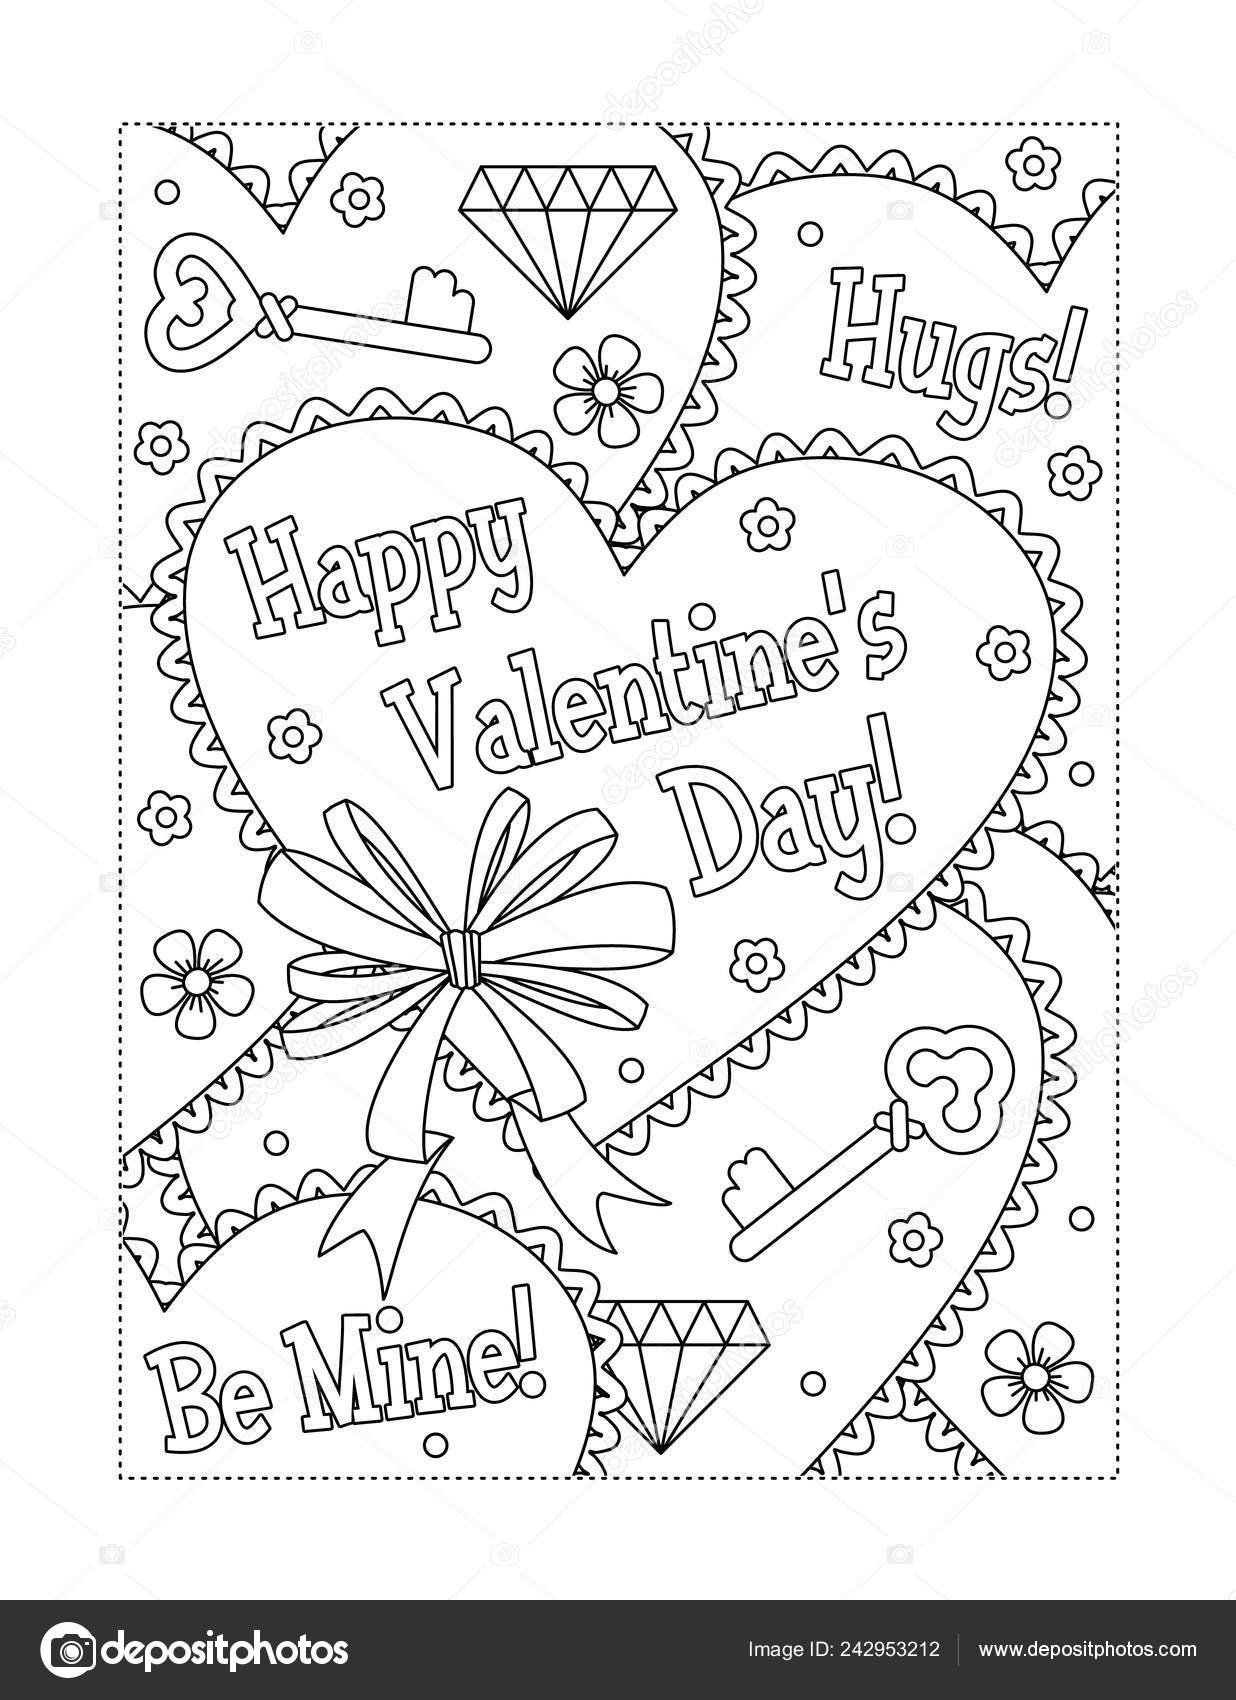 15 Valentine's Day Coloring Pages for Kids | Shutterfly | 1700x1236